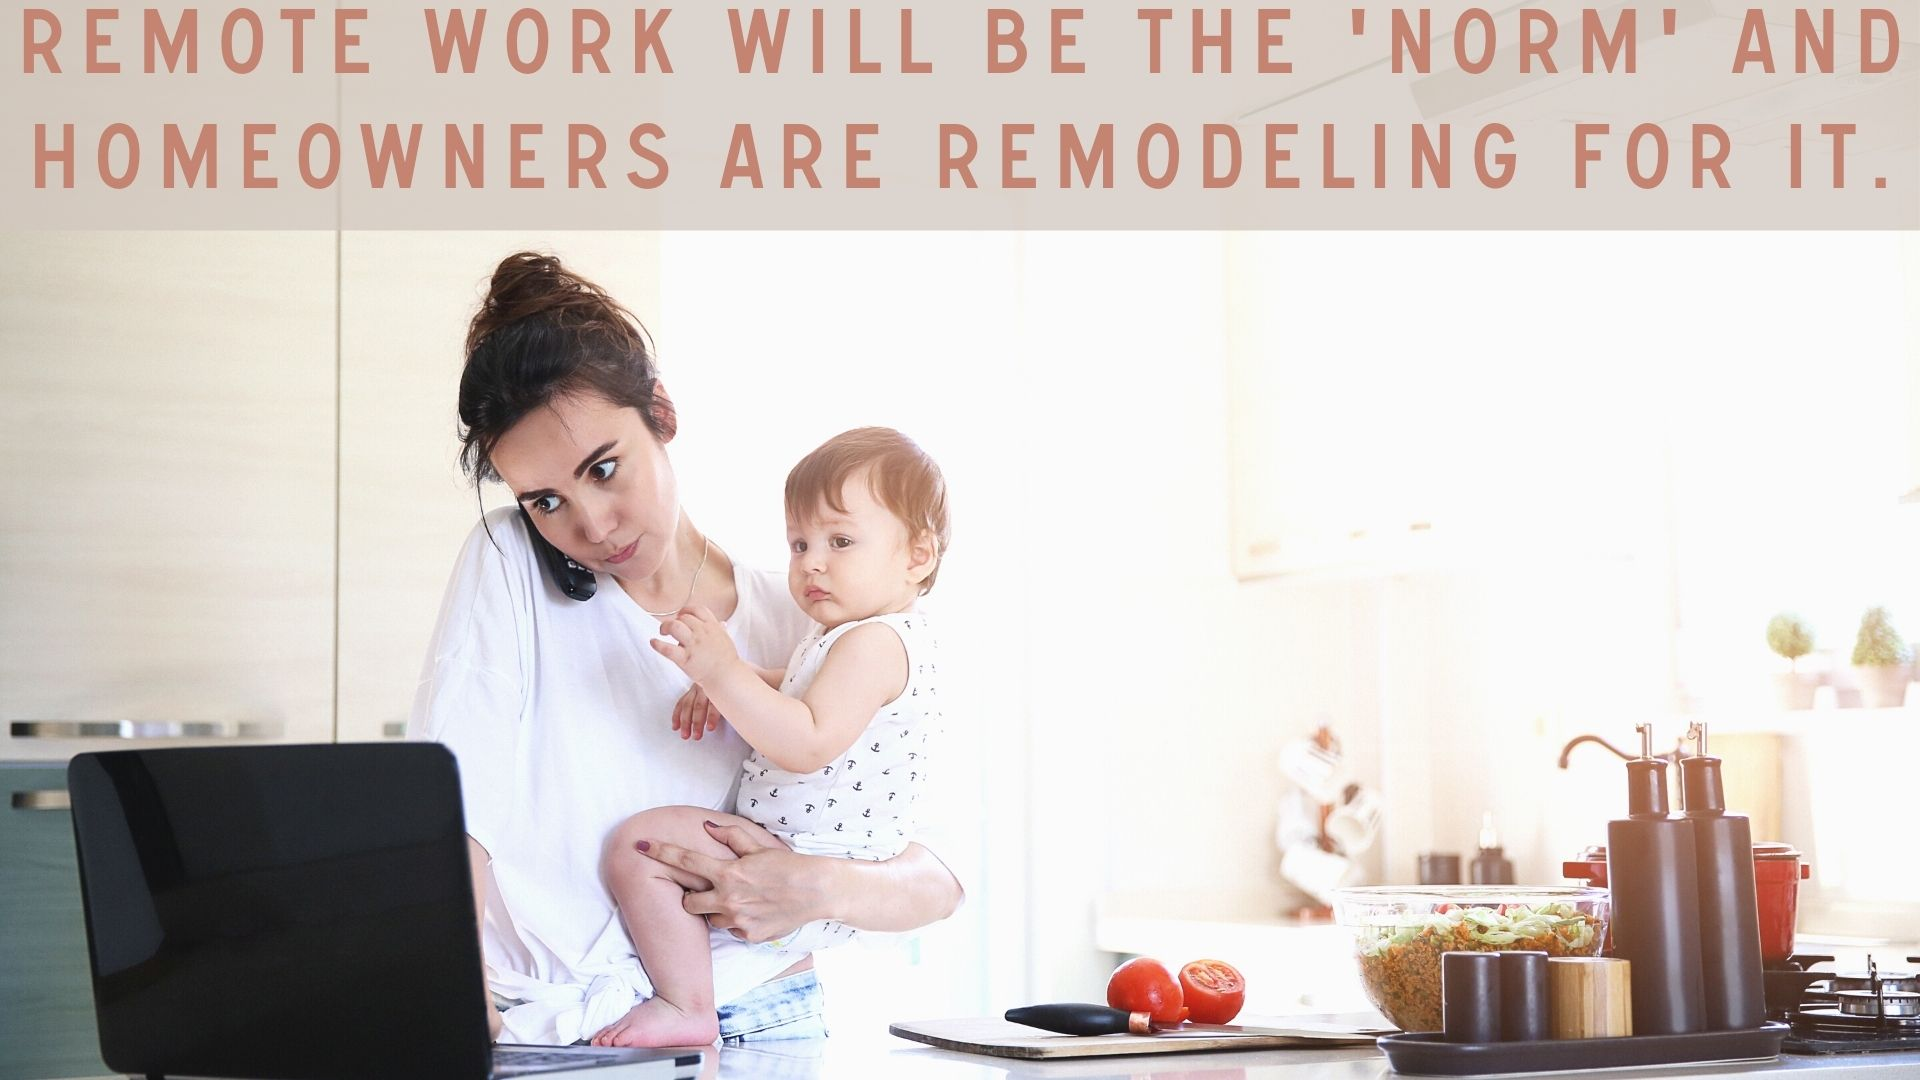 Remote work will be the new 'norm' and homeowners are remodeling for it remote work distance learning home remodels basement remodeling family life work life grind hustle